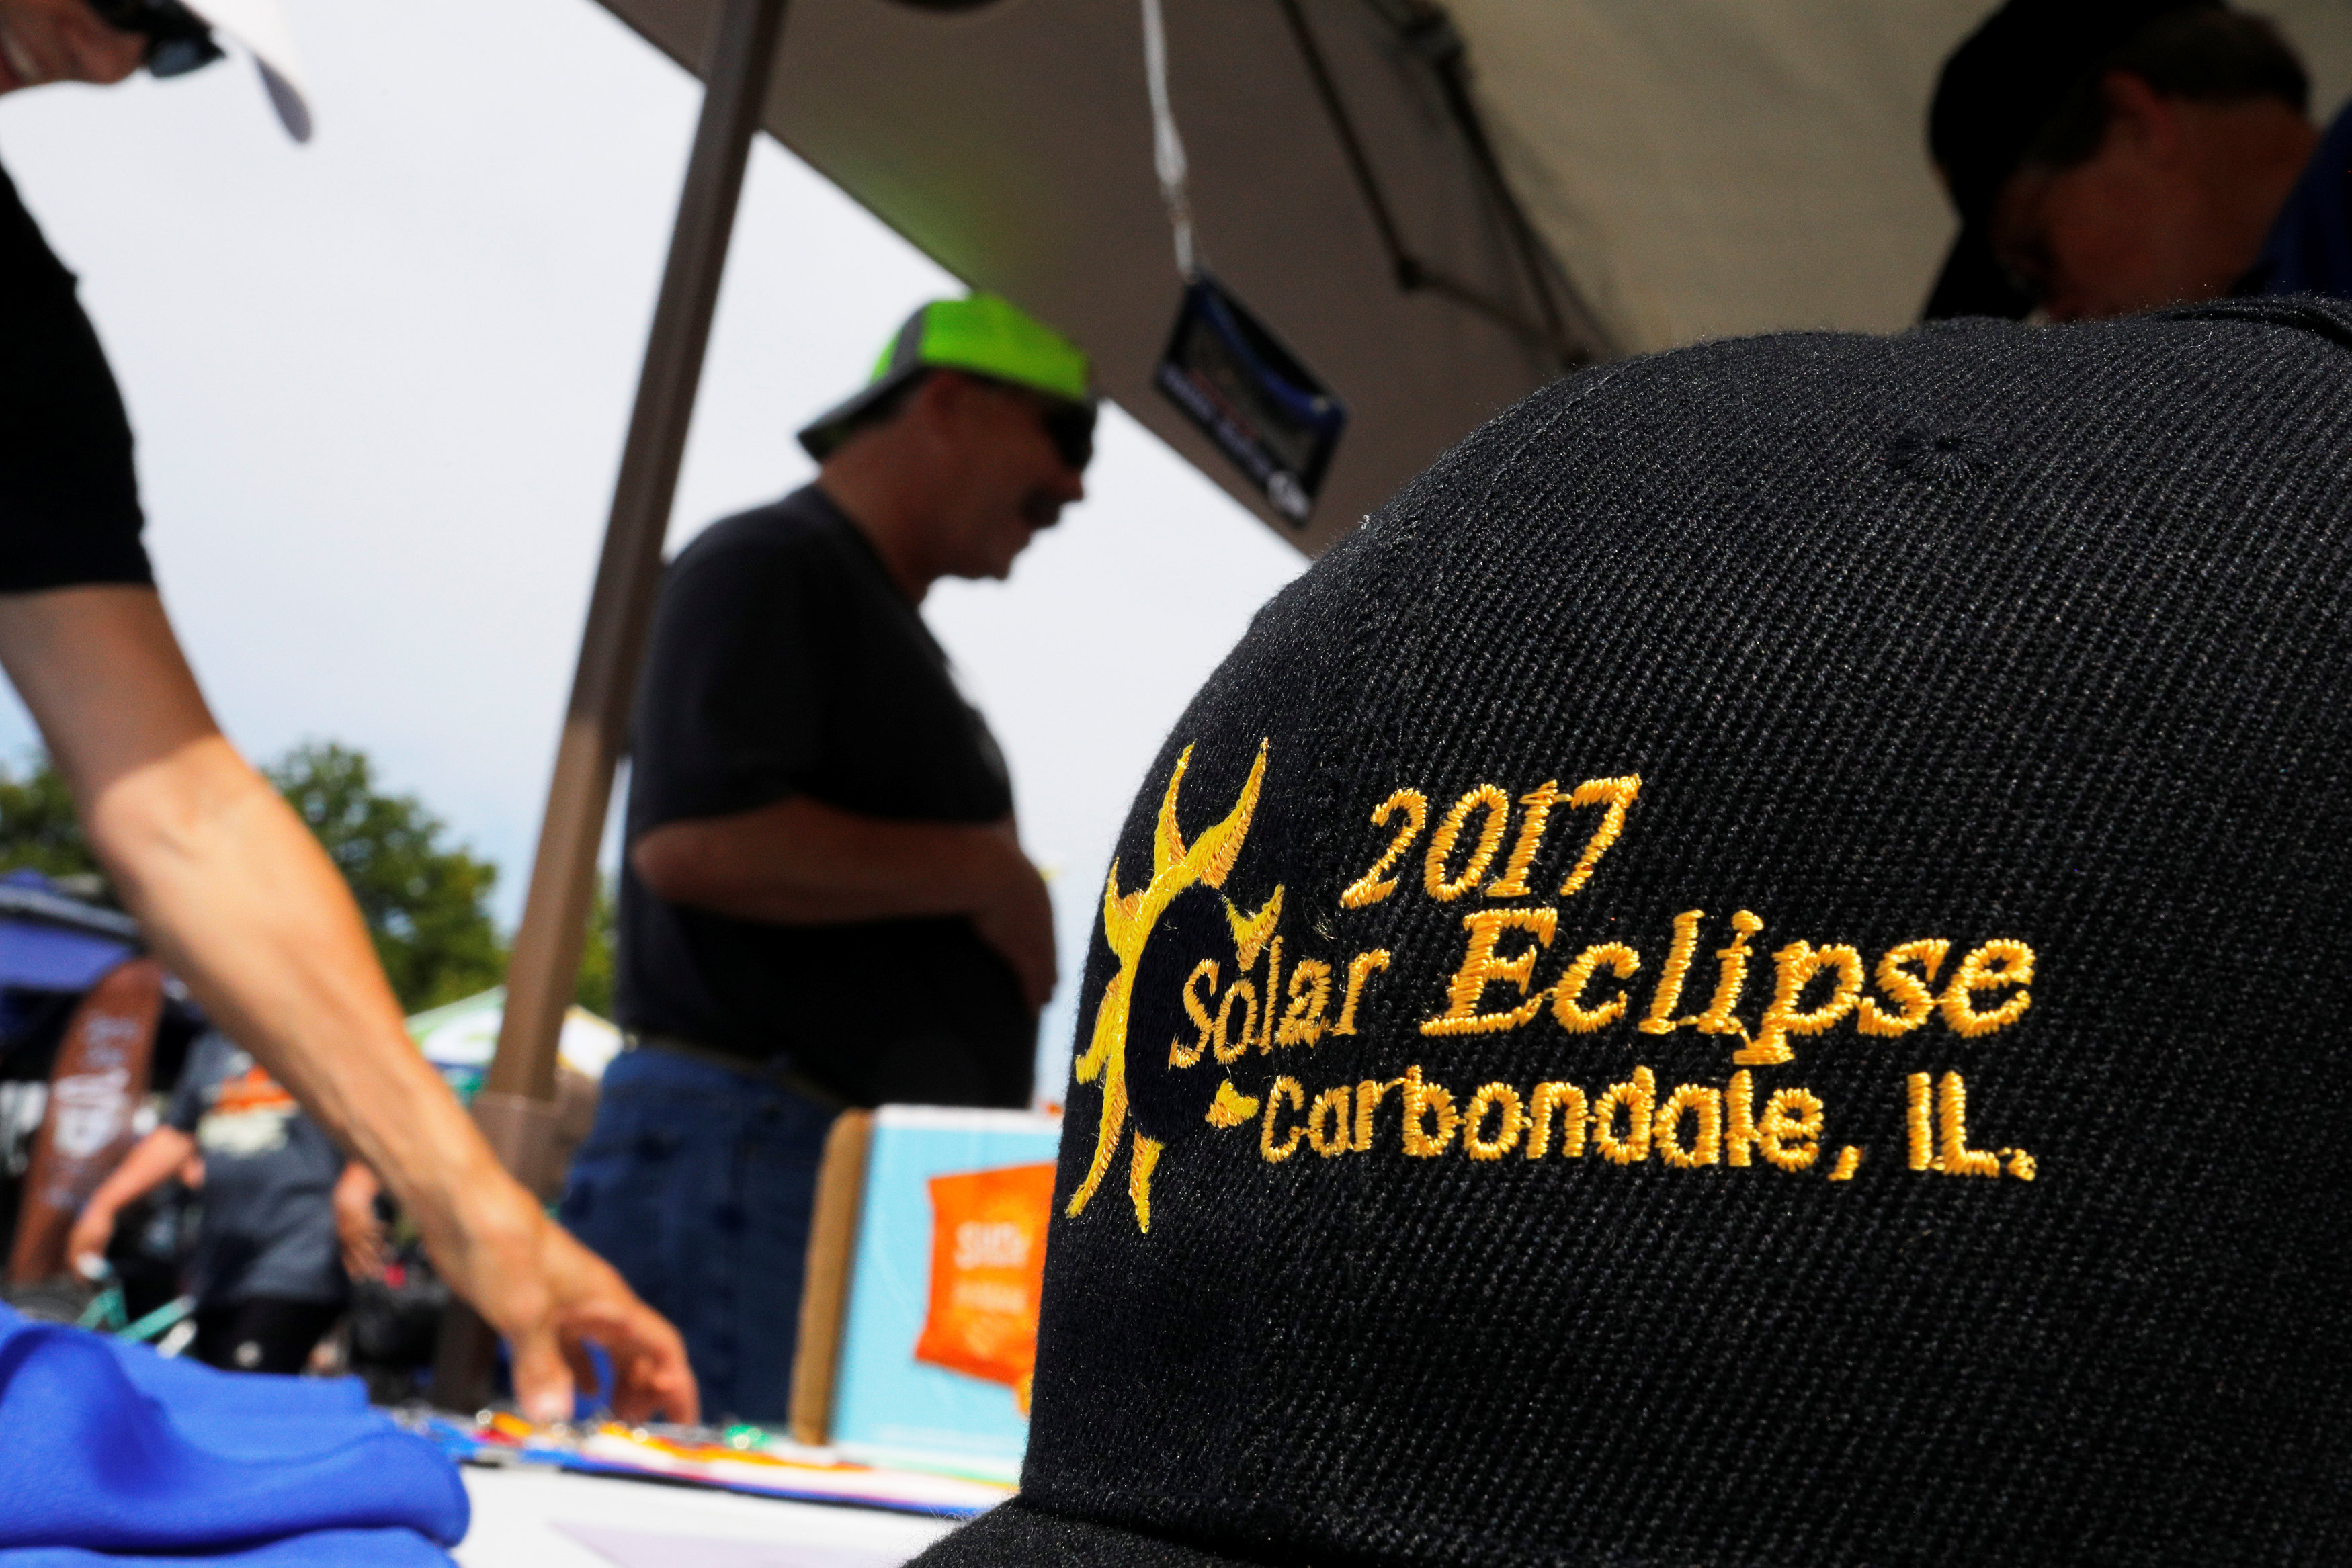 The Rotary Club sells commemorative baseball caps in Carbondale, Illinois, U.S., August 20, 2017, one day before the total solar eclipse. REUTERS/Brian Snyder